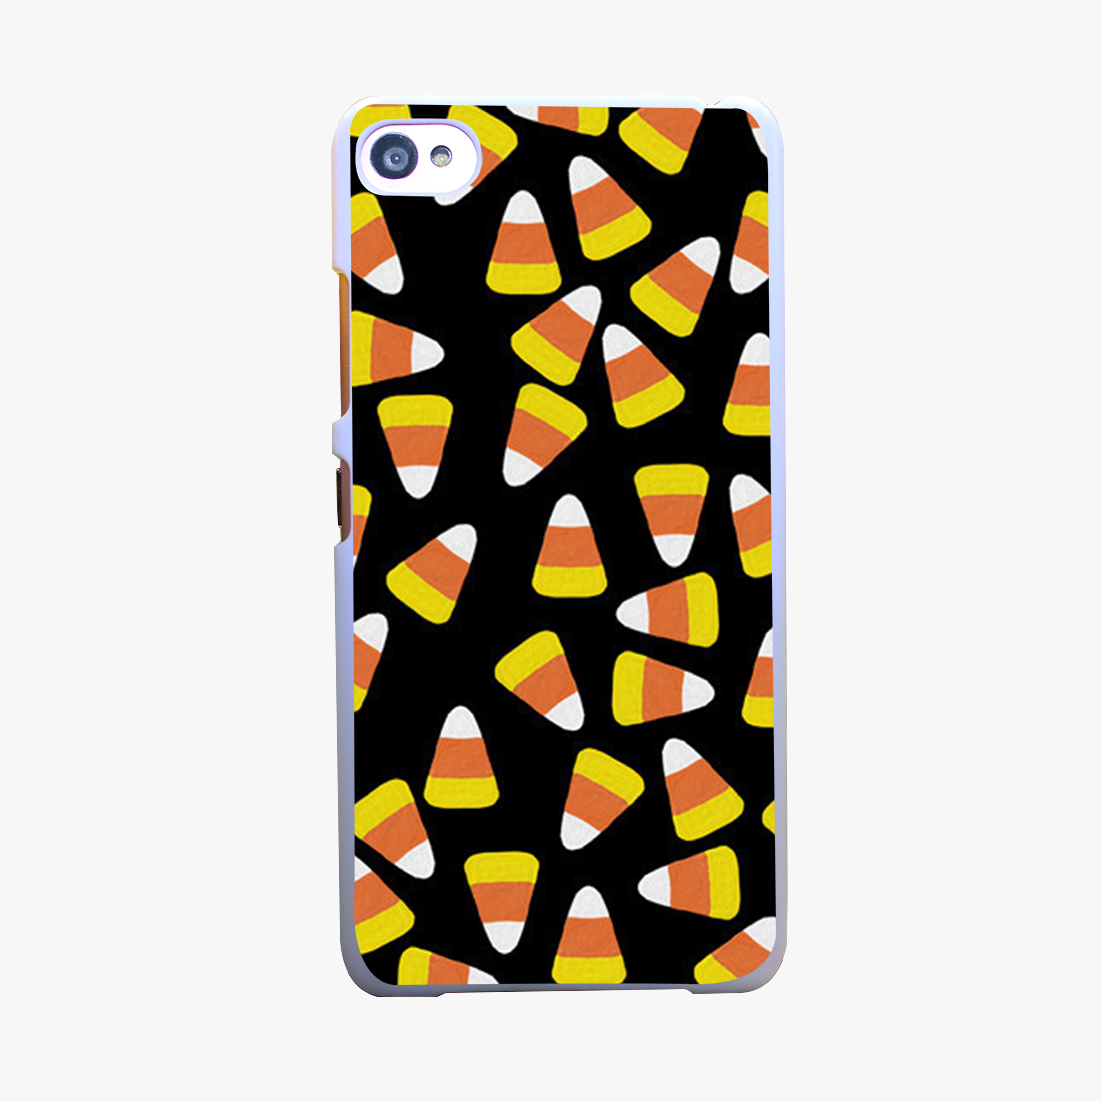 10701A Candy Corn <font><b>Jumble</b></font> Hard White Cover Case for Lenovo S850 S90 S60 A536 T A328T